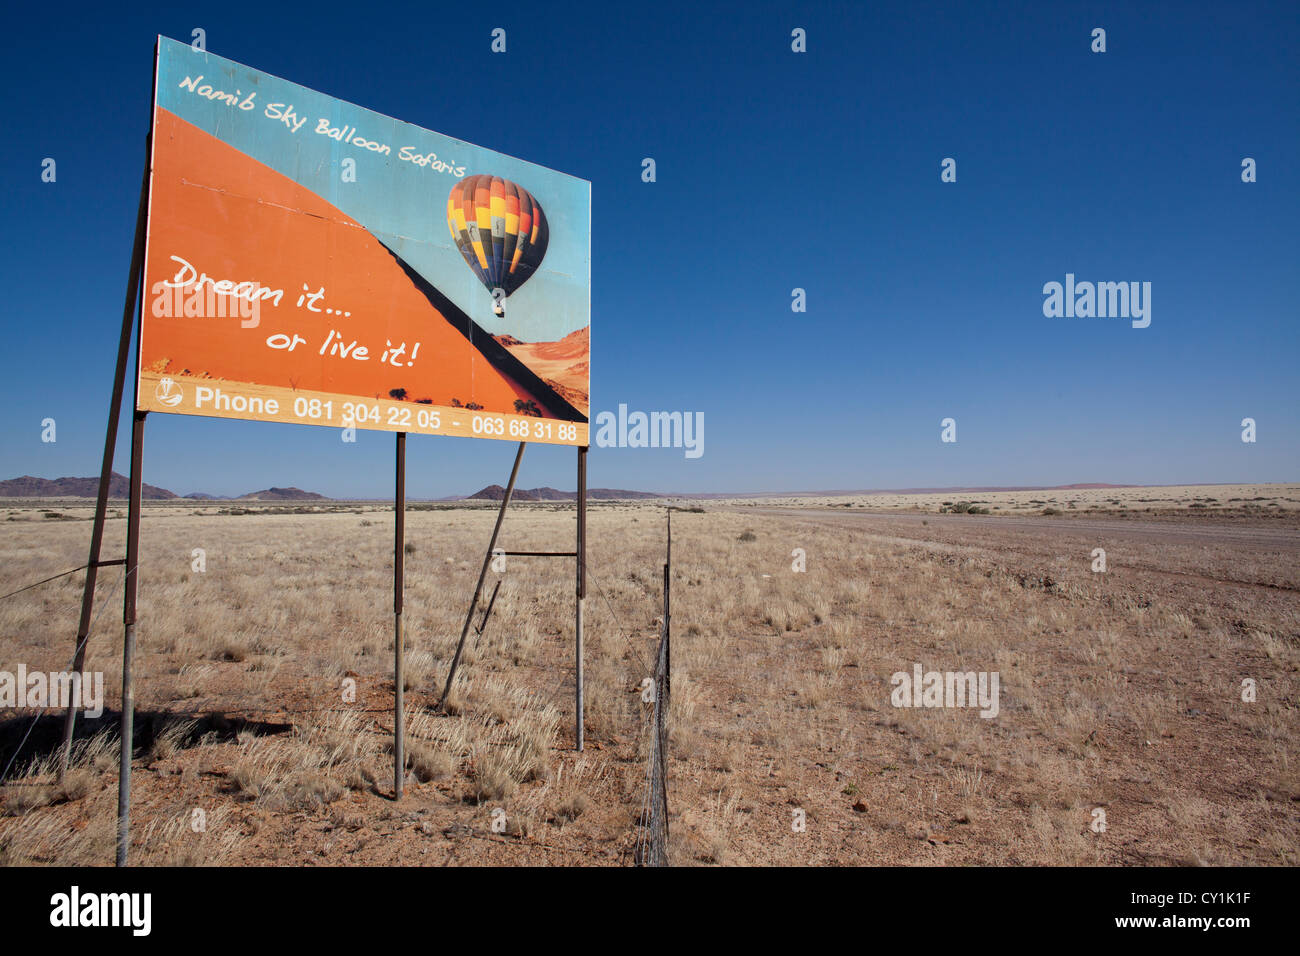 solitair is a small settlement south of Windhoek, namibia - Stock Image